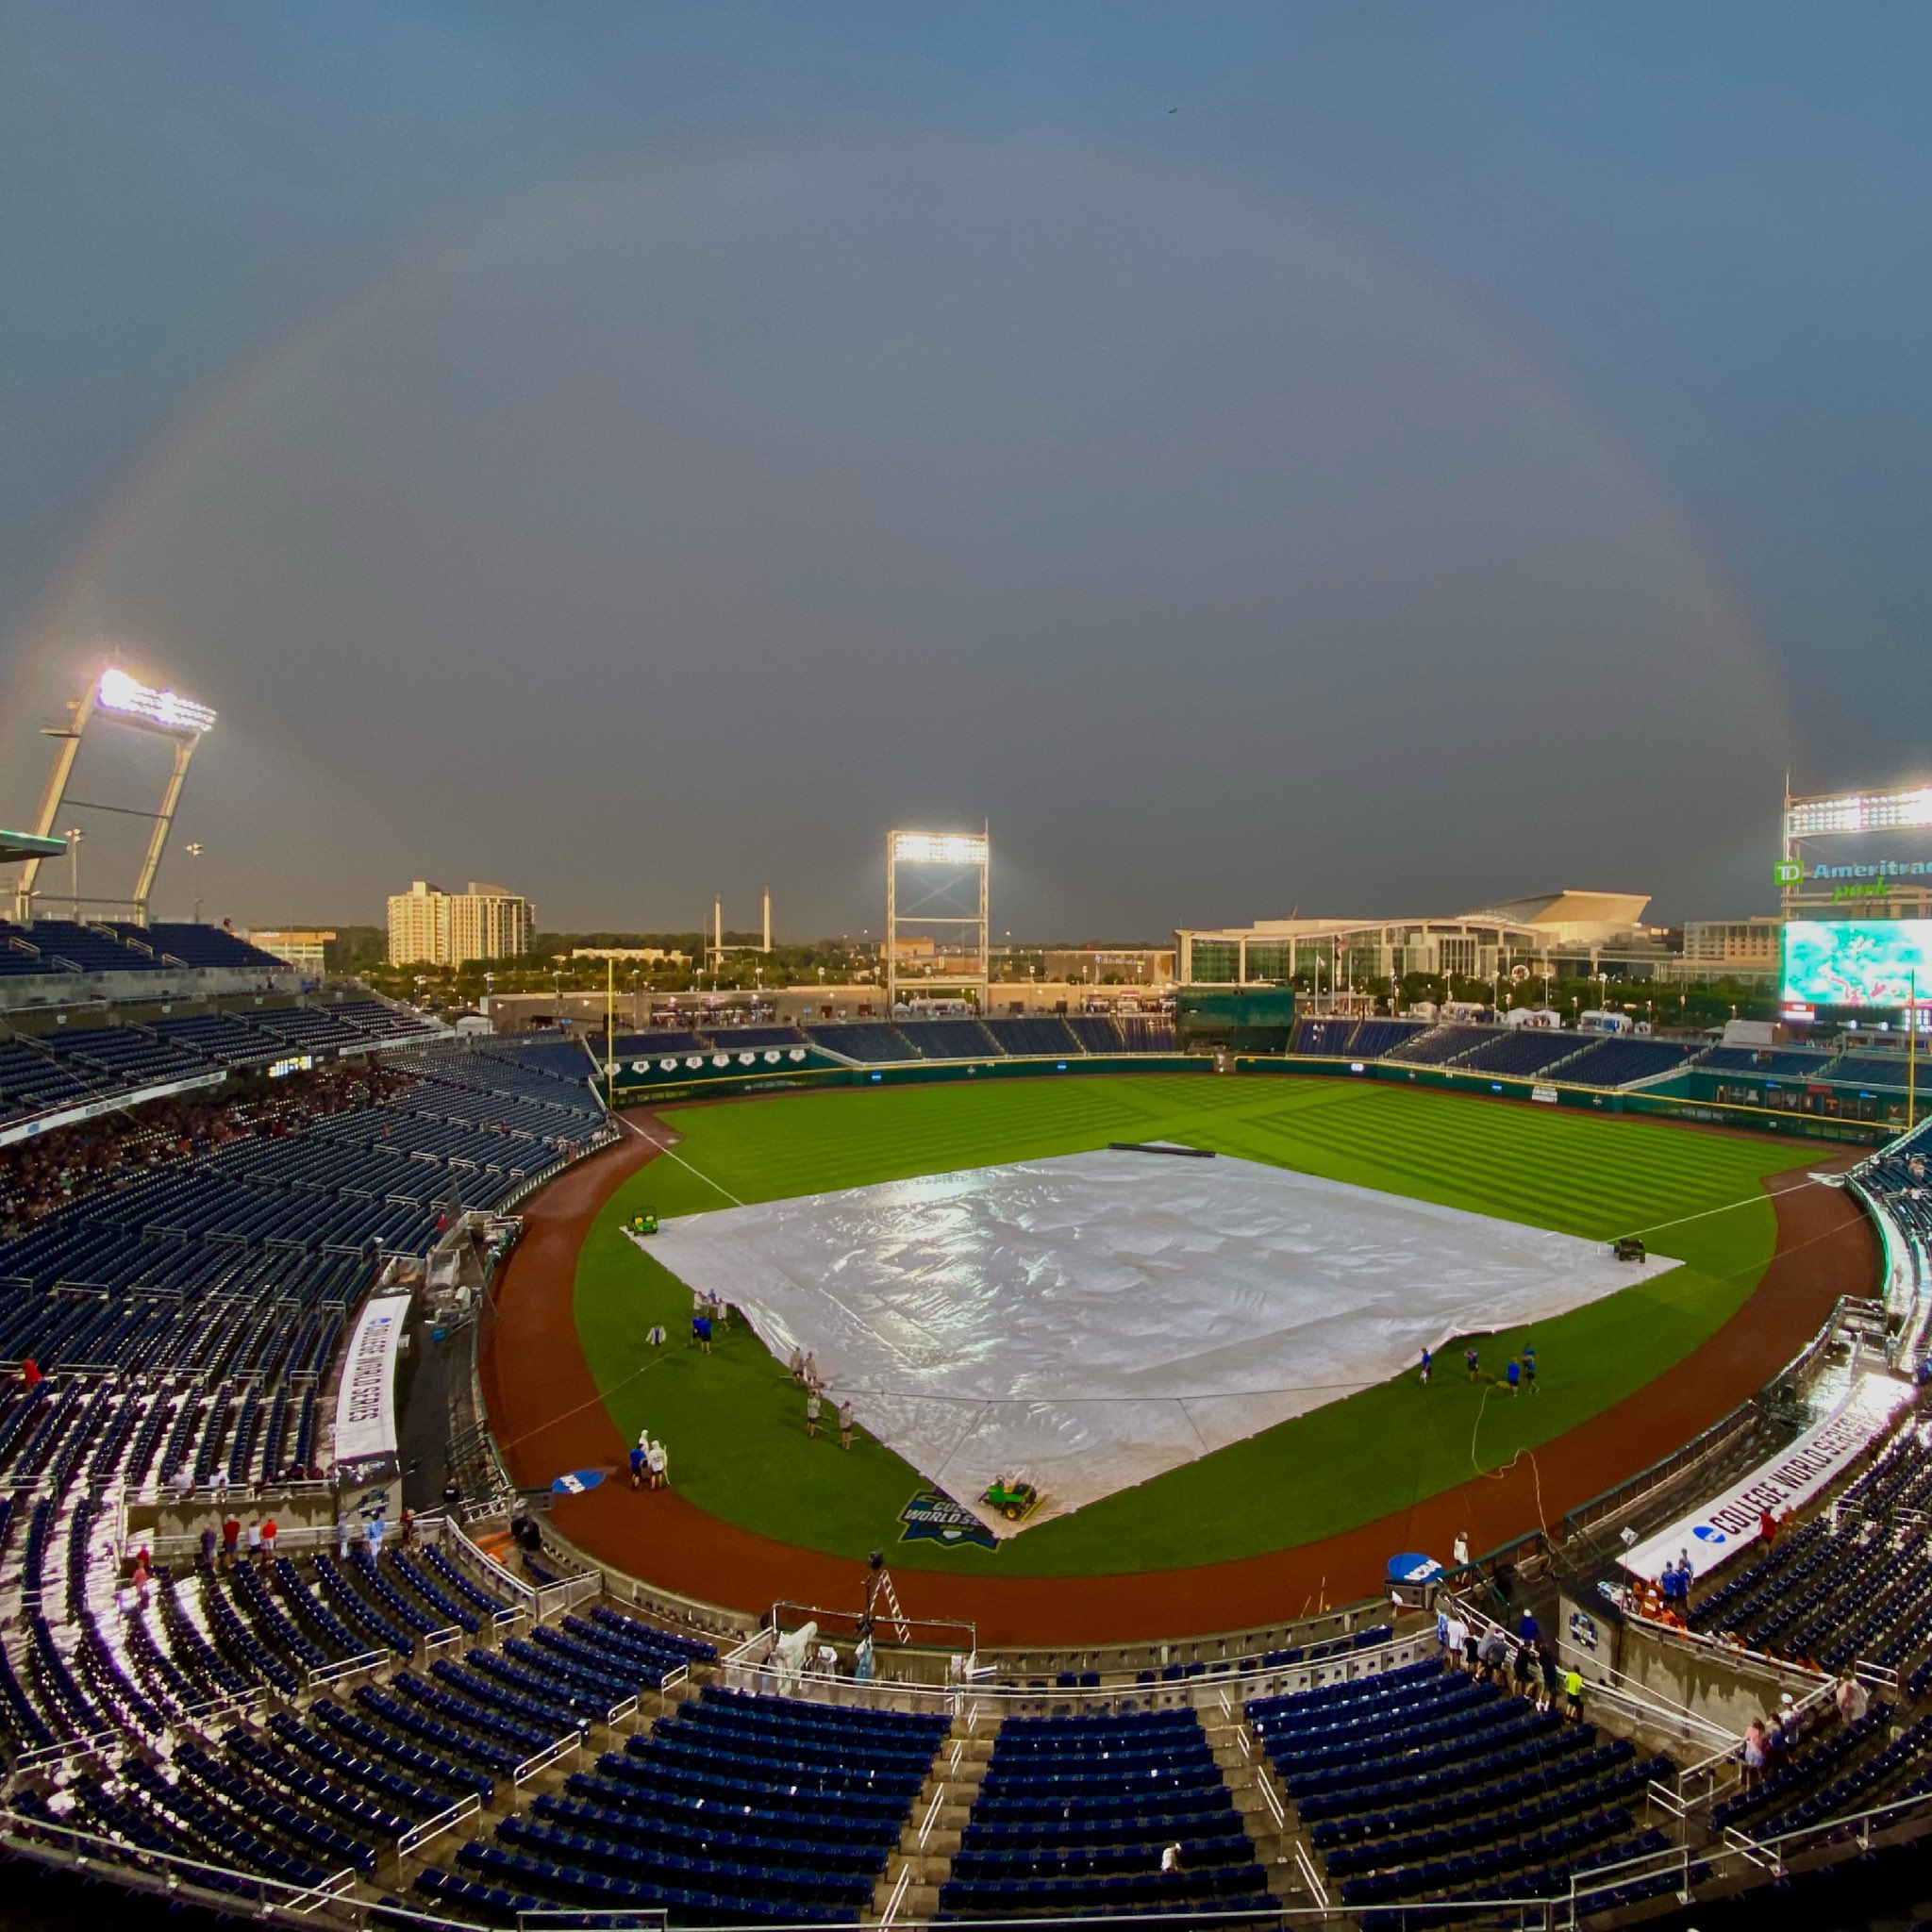 From 🌧 to 🌈 #CWS https://t.co/OoSpAh6gva